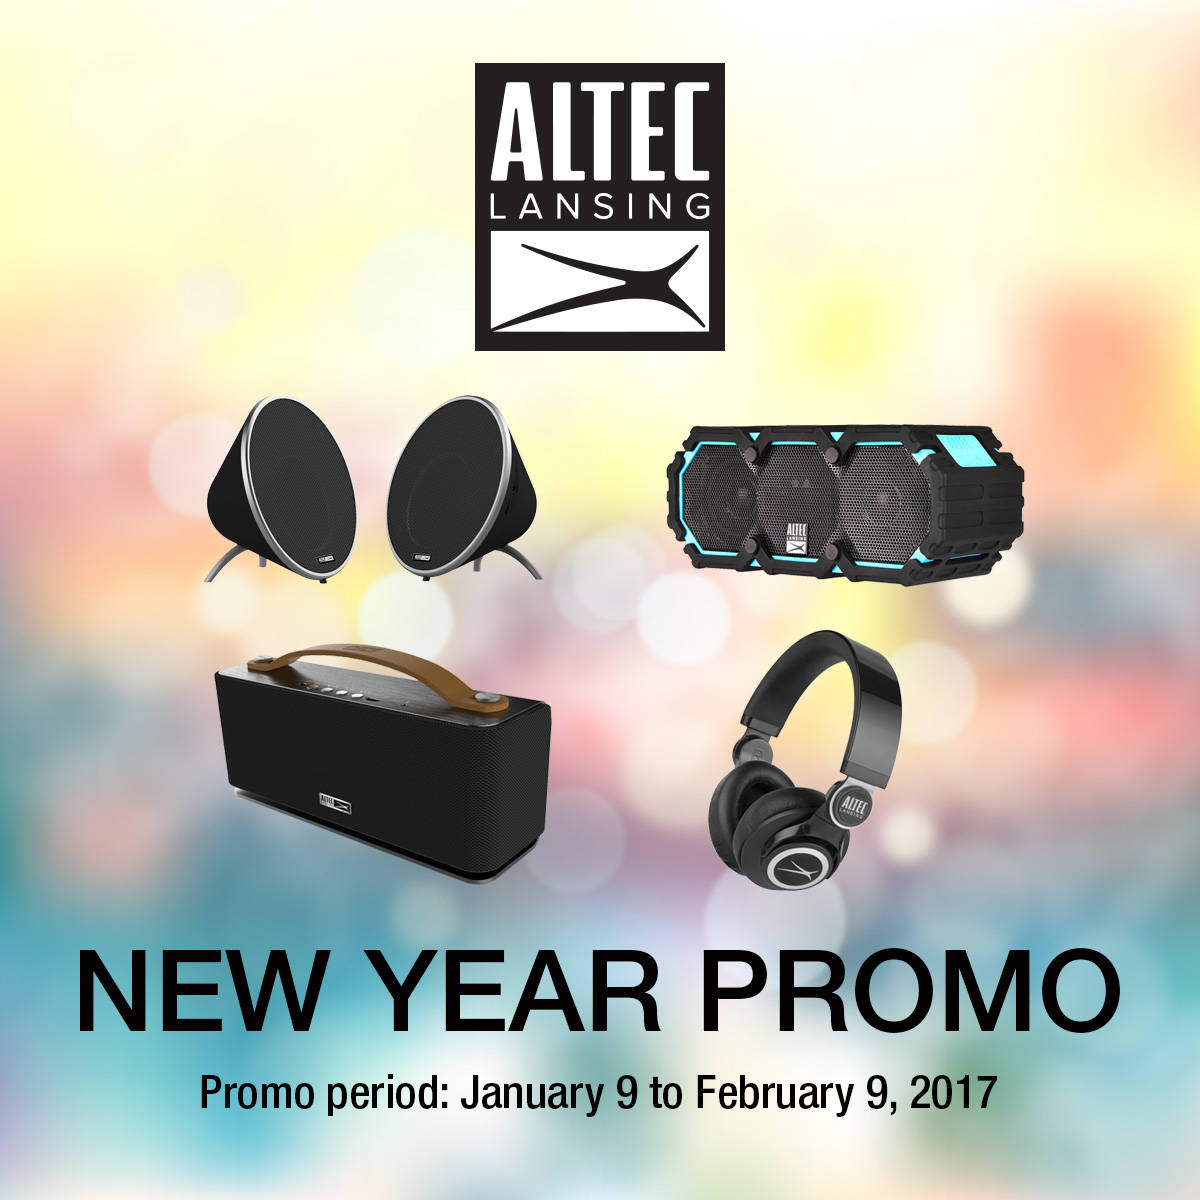 Altec Lansing New Year Special Promo